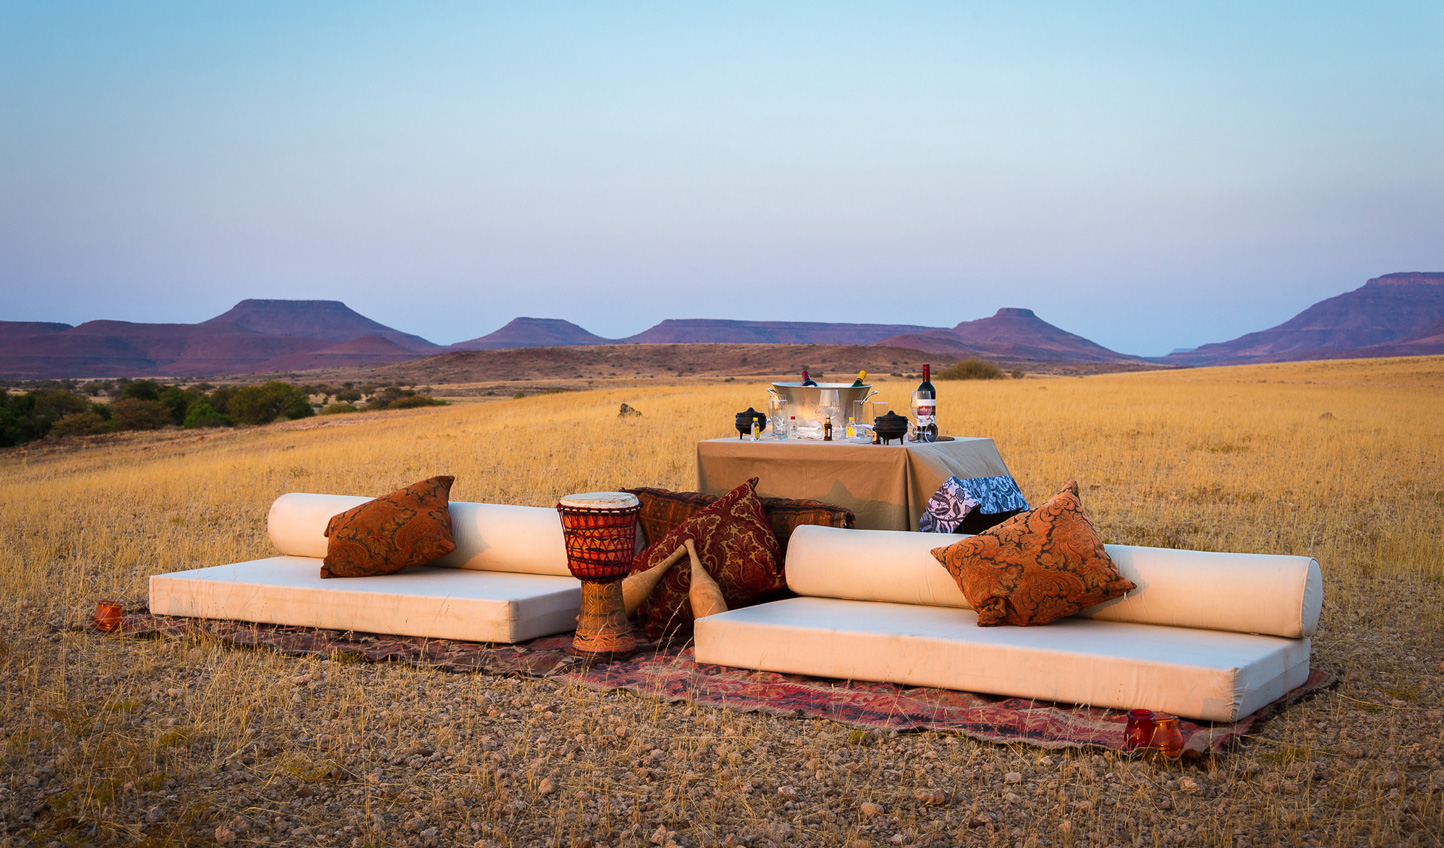 Track down an unbeatable spot for those sundowners